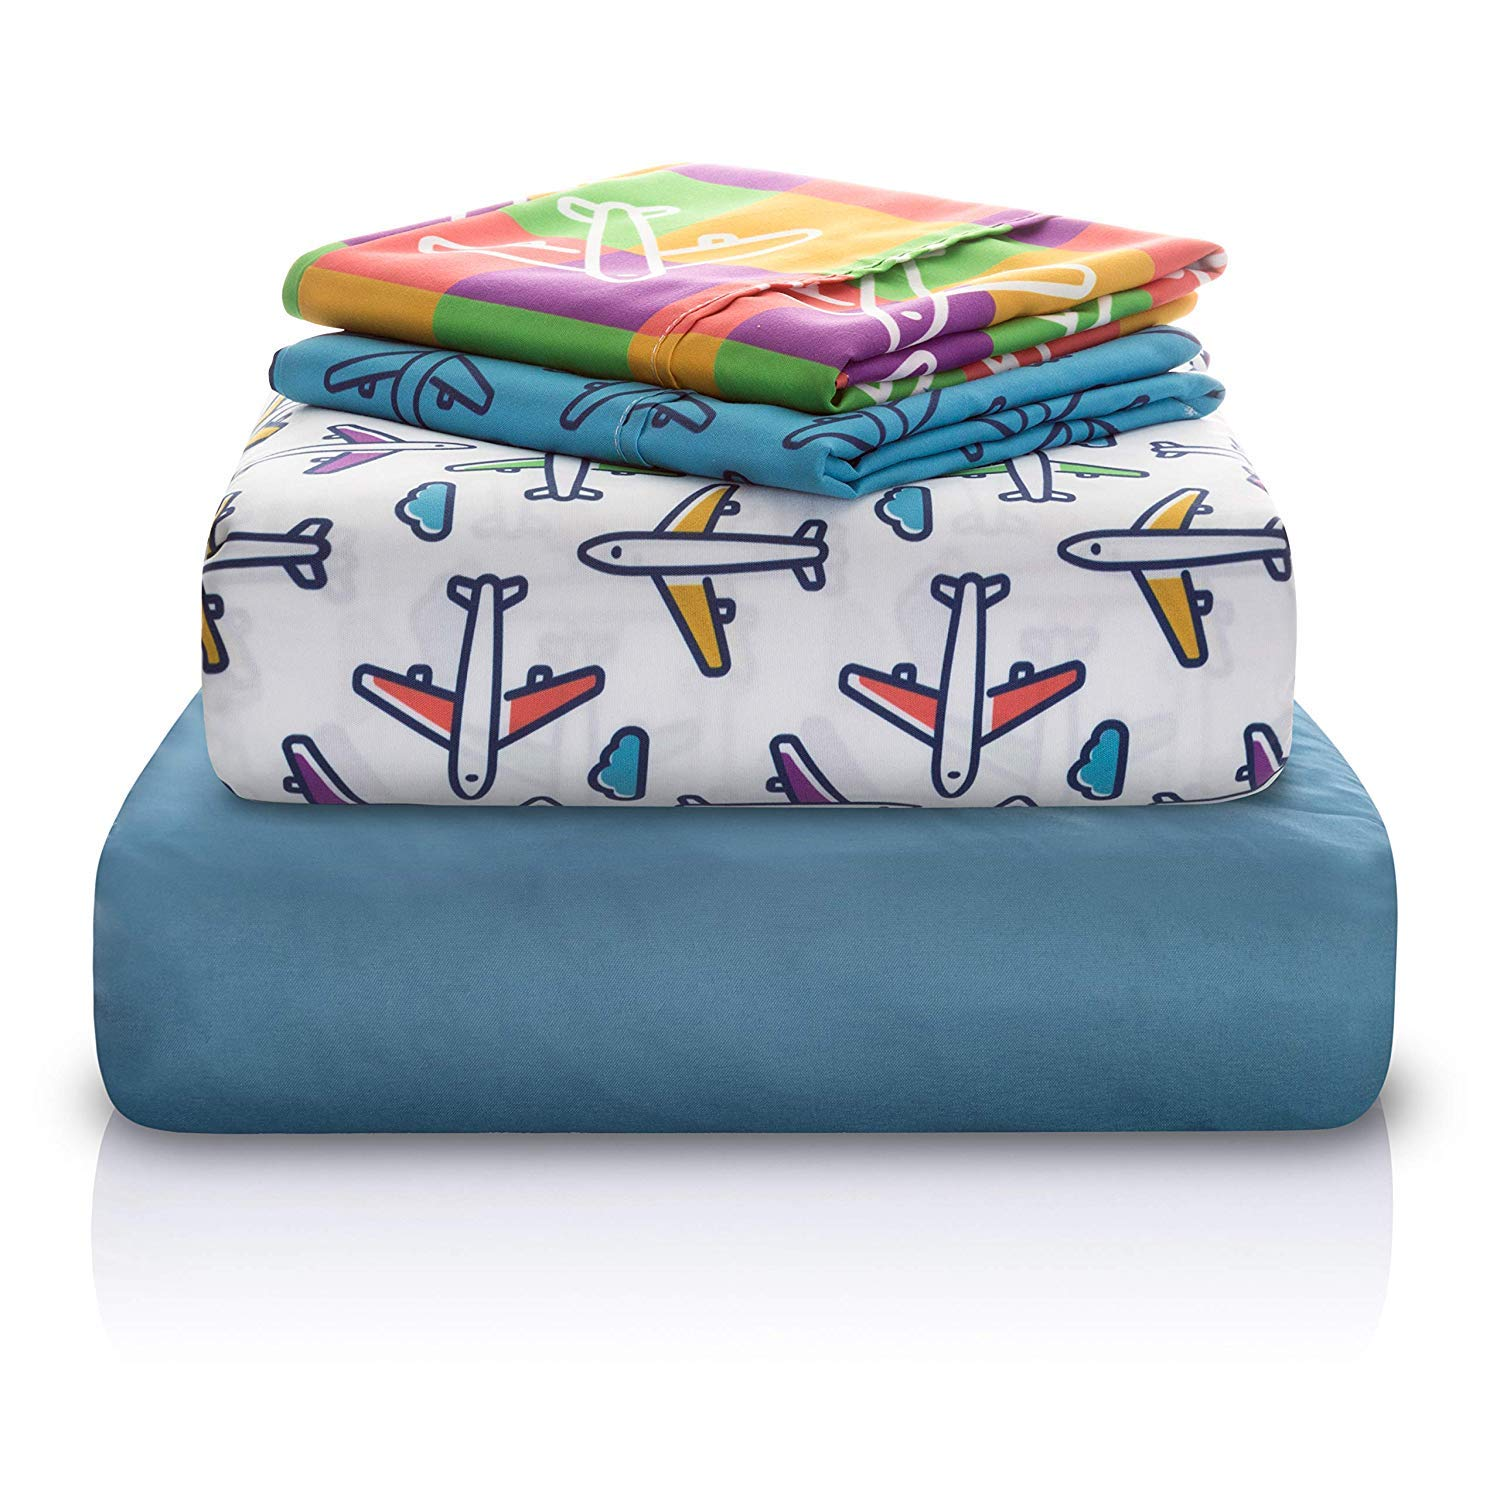 Chital Twin Bed Sheets for Boys | 4 Pc Kids Bedding Set | Airplane Print | 1 Flat & 1 Fitted Sheet, 2 Pillow Cases | Durable Super-Soft, Double-Brushed Microfiber | 15'' Deep by Chital